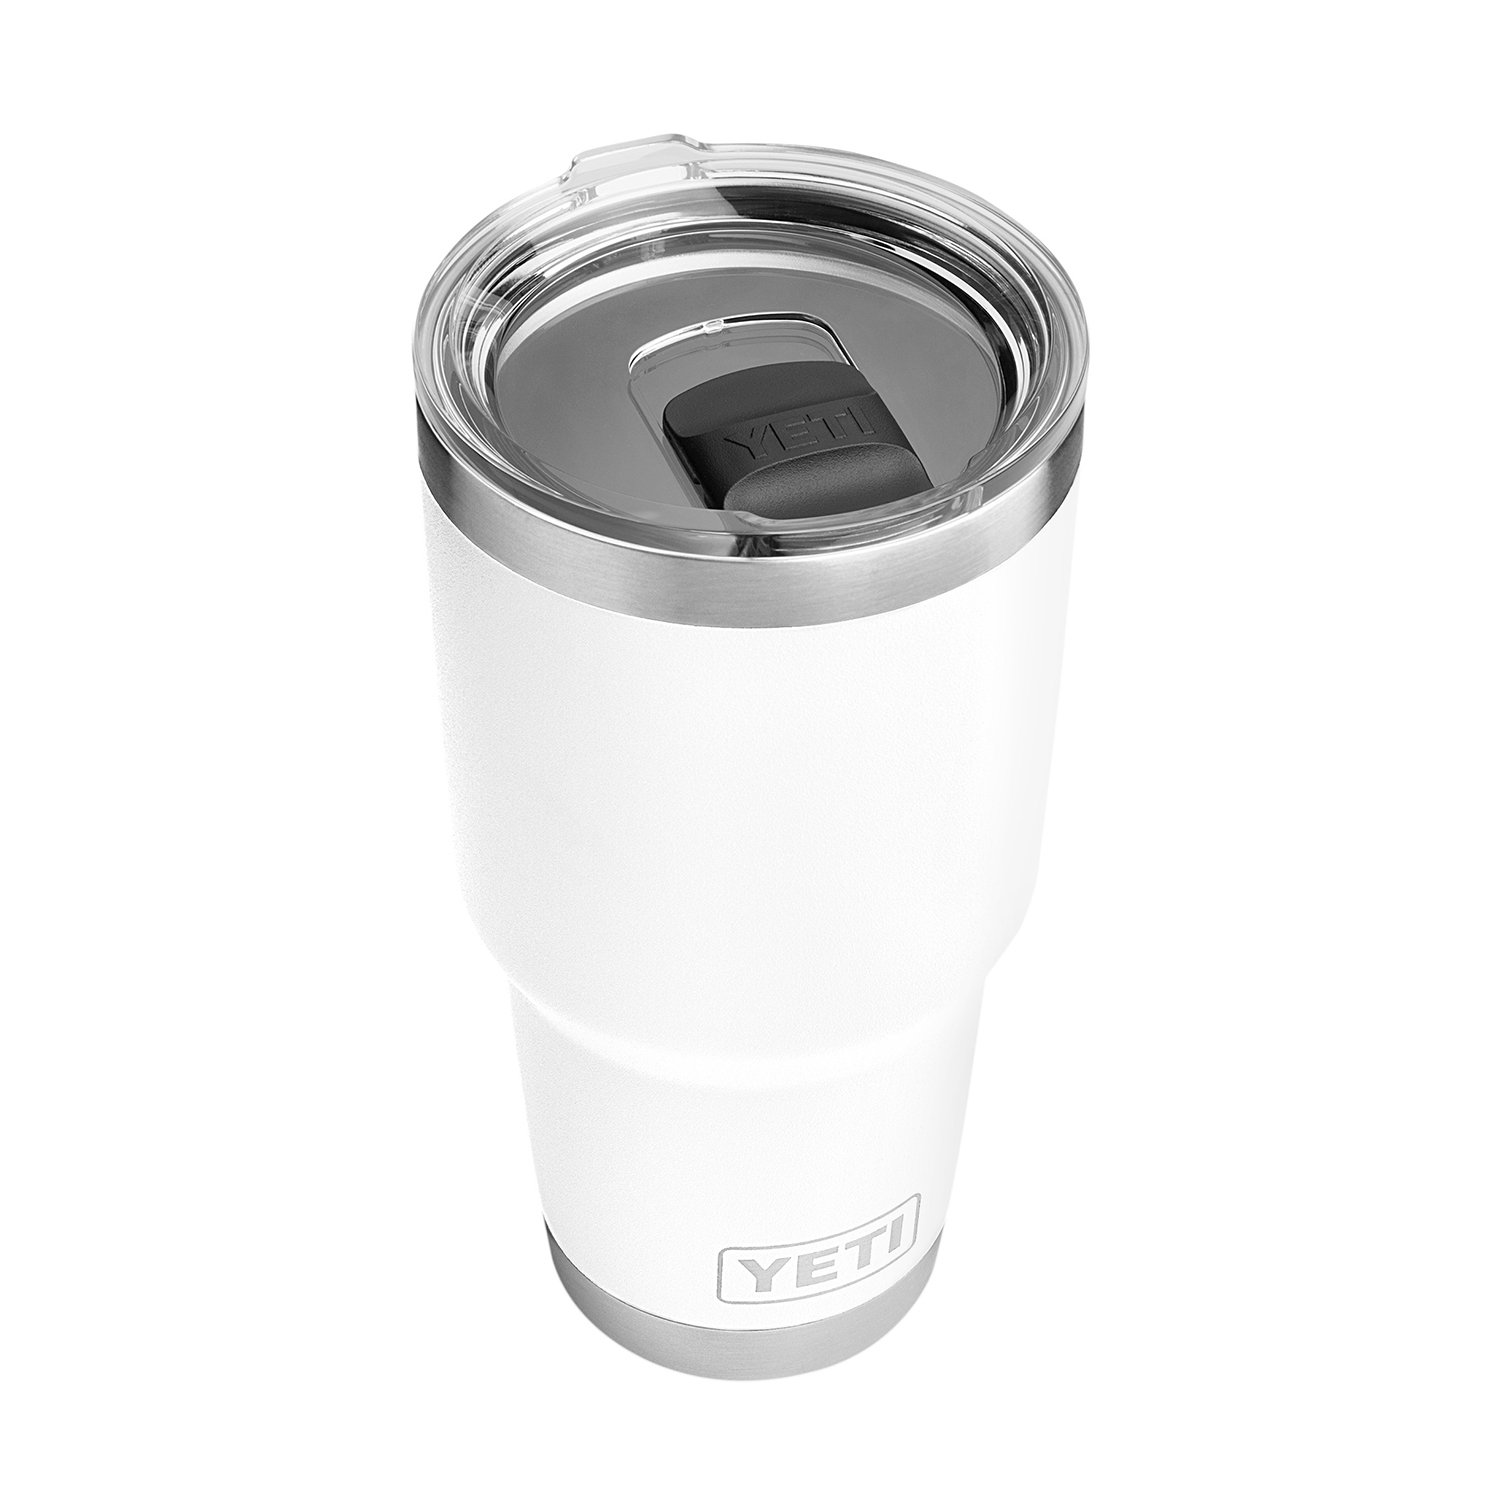 Genuine BMW Thermo Mug Stainless Steel Insulated Cup Travel 15oz 80562211967